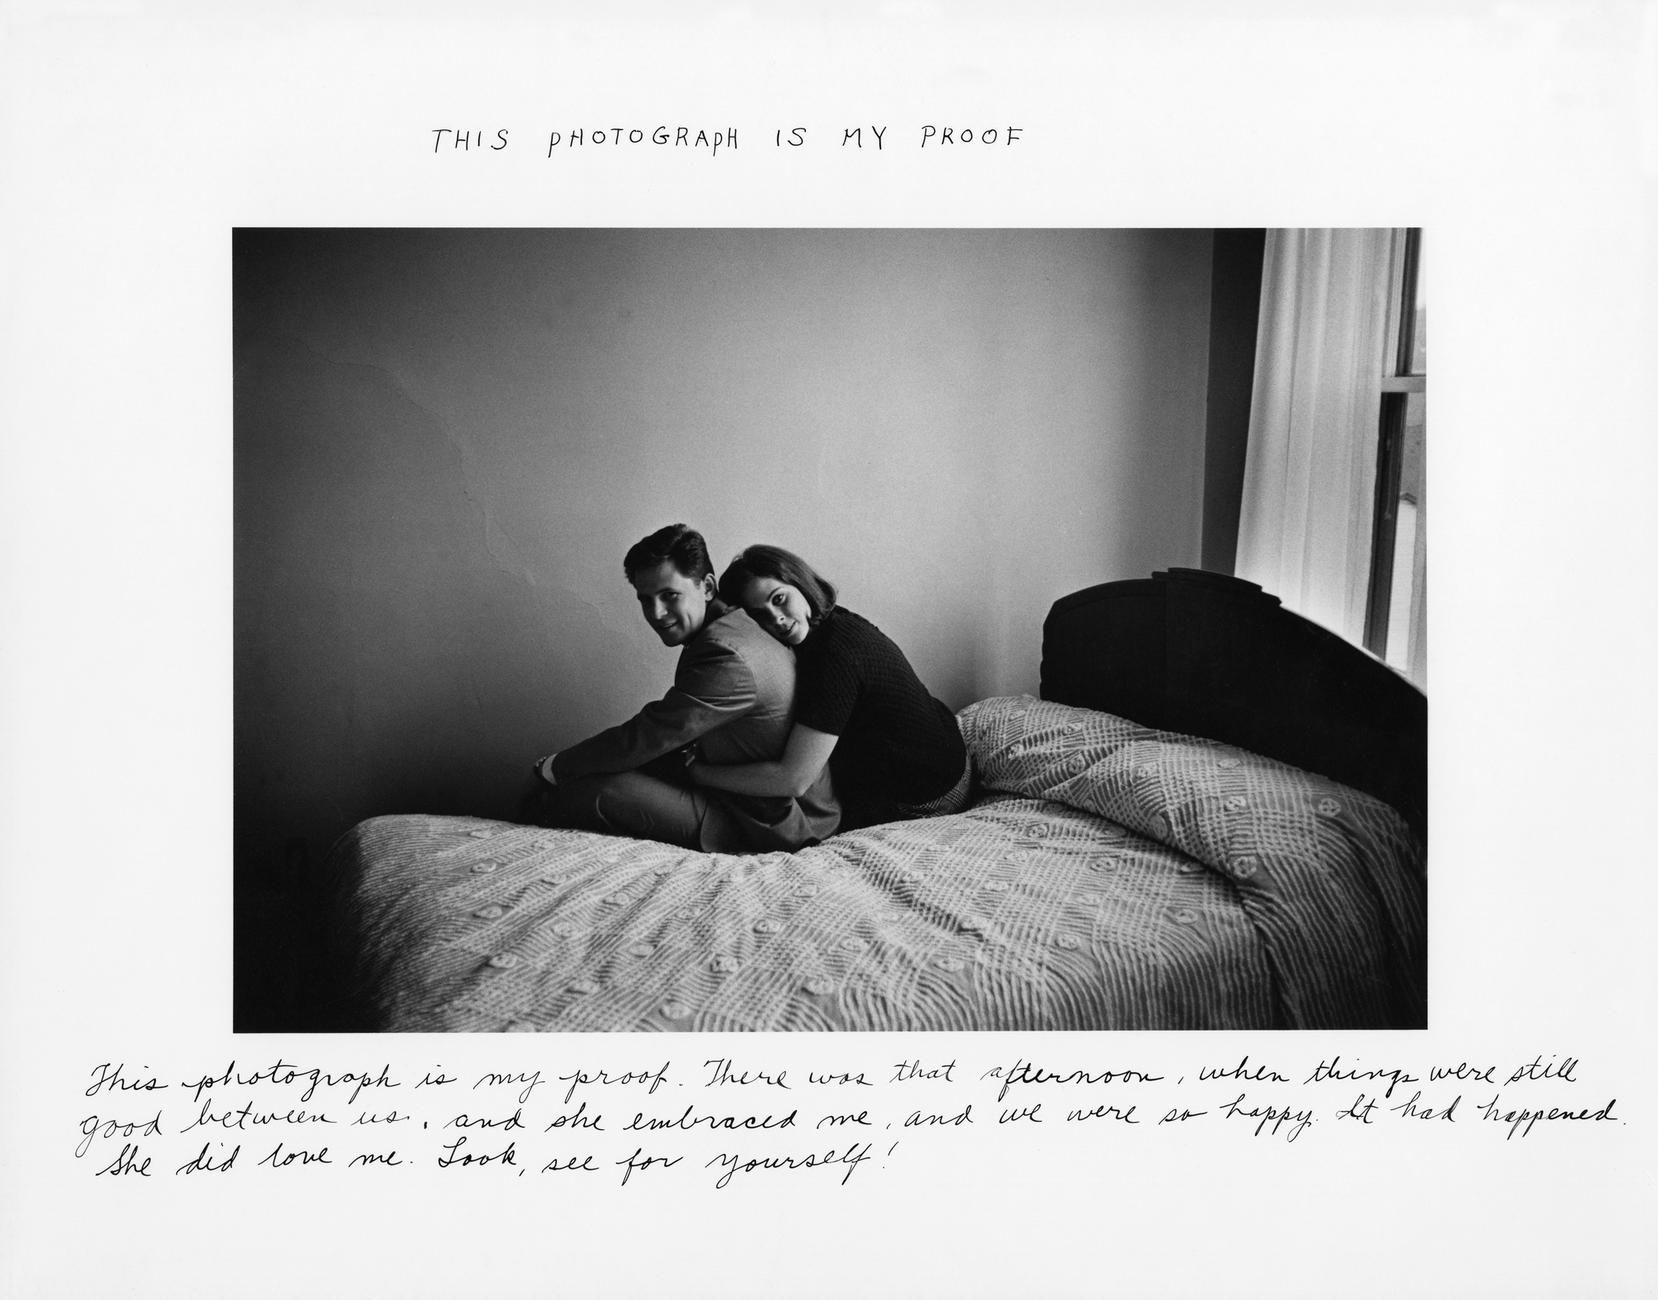 Duane Michals, 1967 This Photograph Is My Proof - | Duane michals, Duane,  Photographer